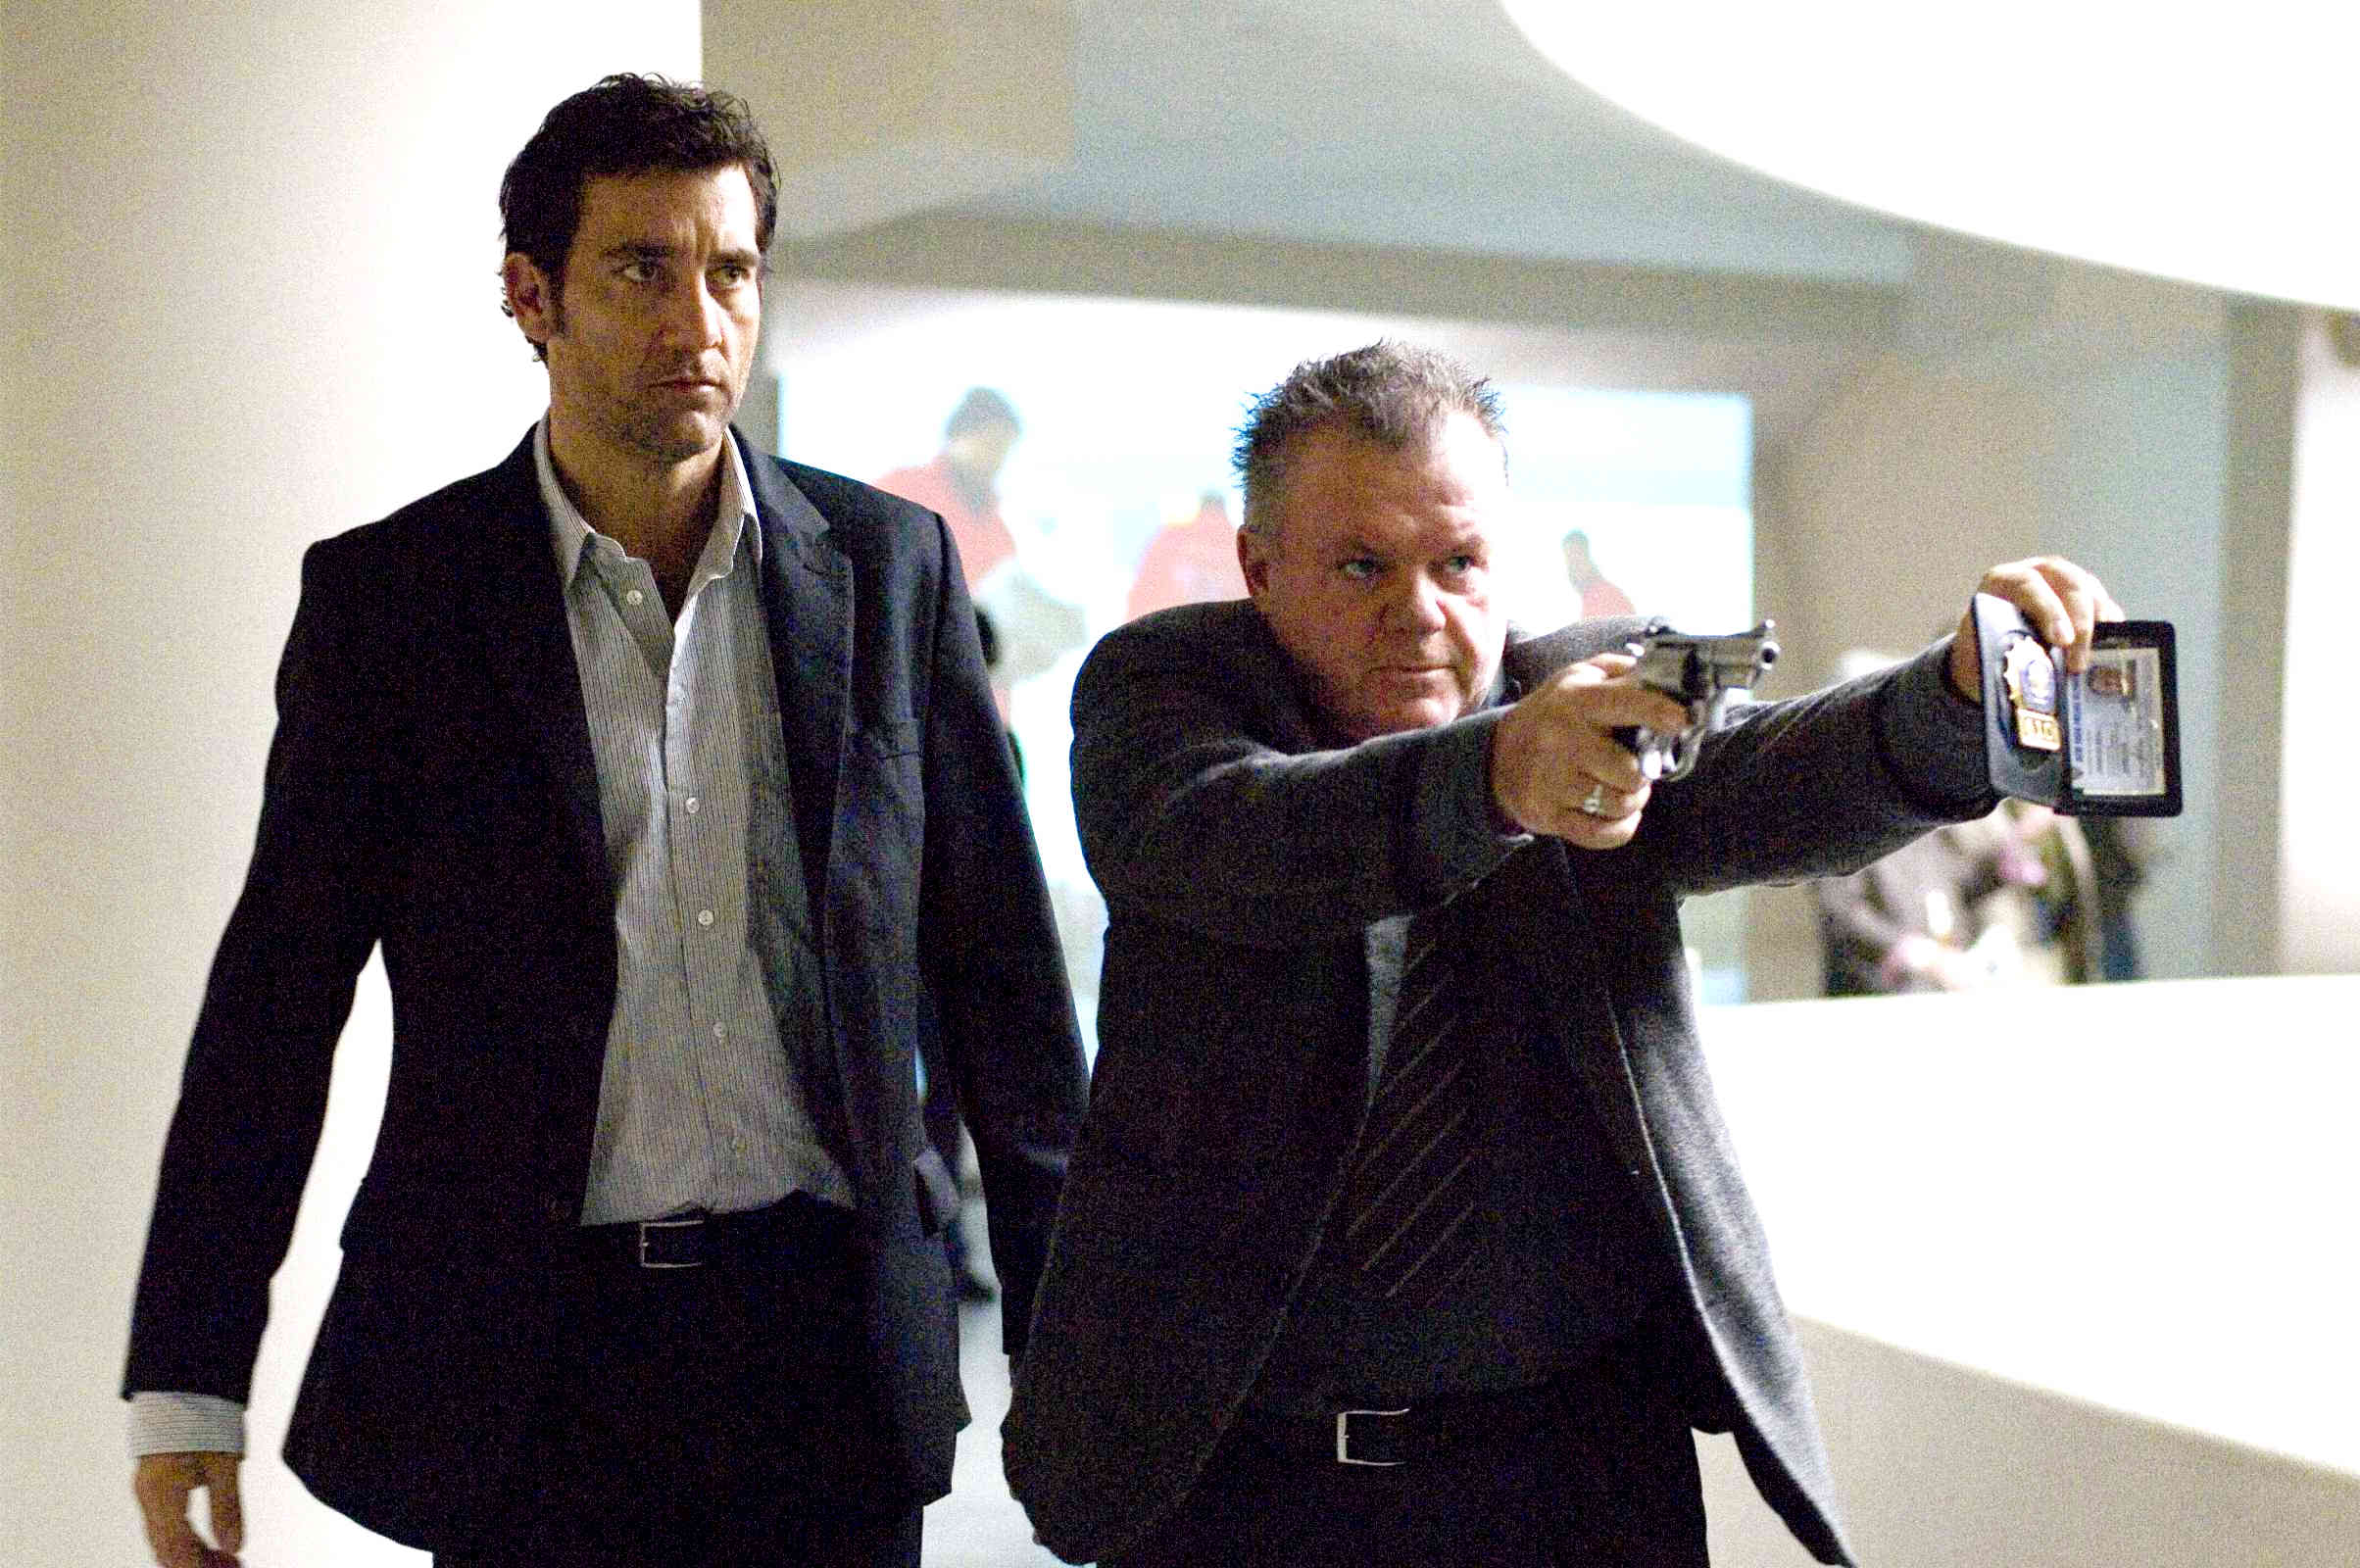 Clive Owen gets ready to shoot up the Guggenheim museum in the show-stopping central set piece of  The International  (2009).